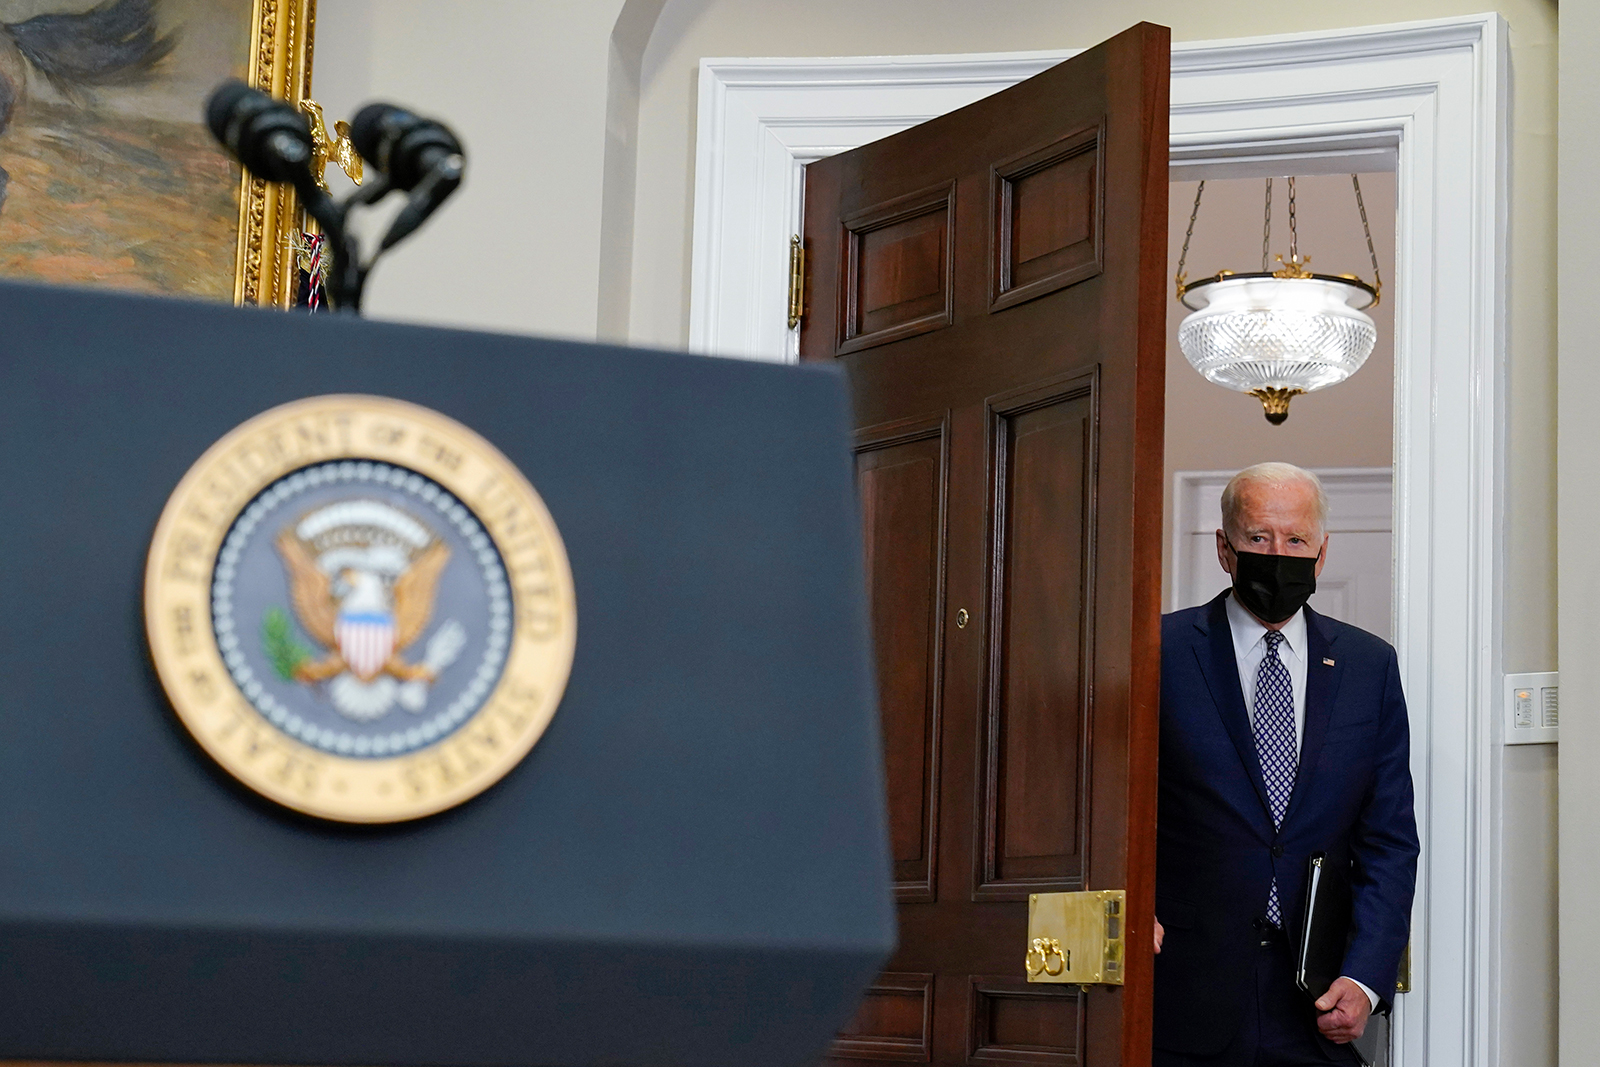 President Joe Biden arrives to speak about the situation in Afghanistan from the Roosevelt Room of the White House in Washington on Tuesday, August 24.